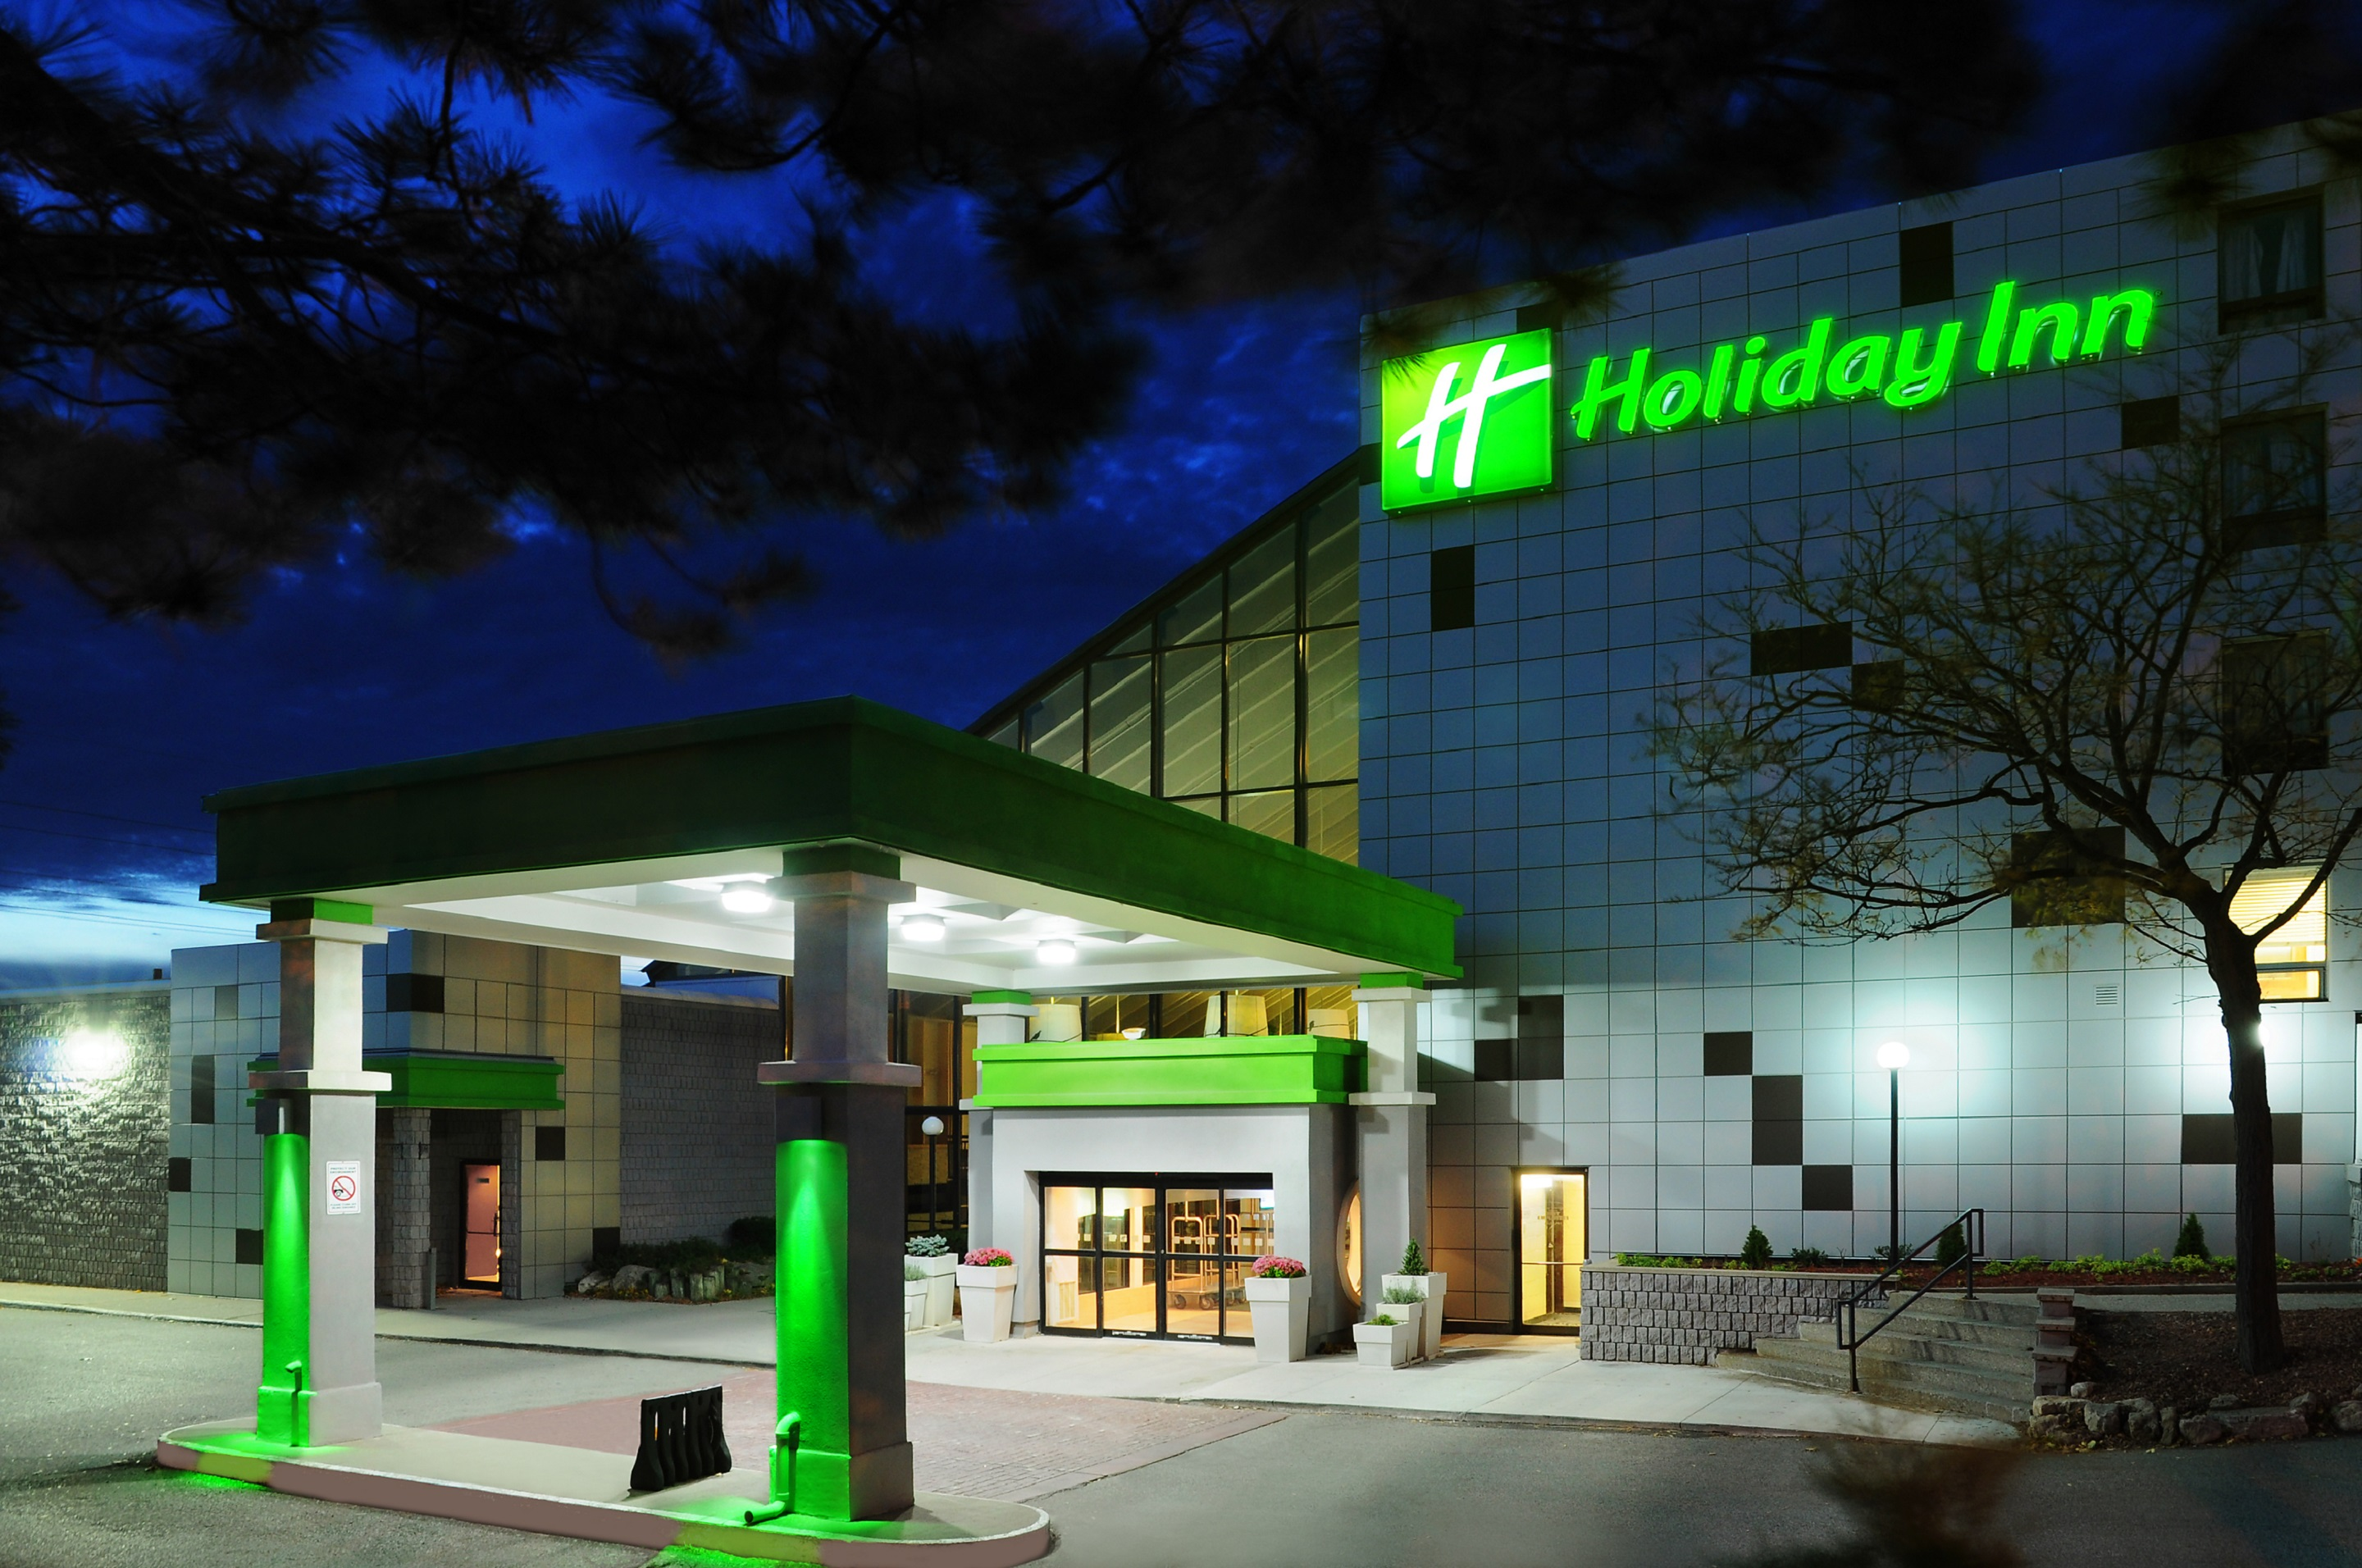 https://www.hotelsbyday.com/_data/default-hotel_image/0/4736/02-exterior-night-3.jpg